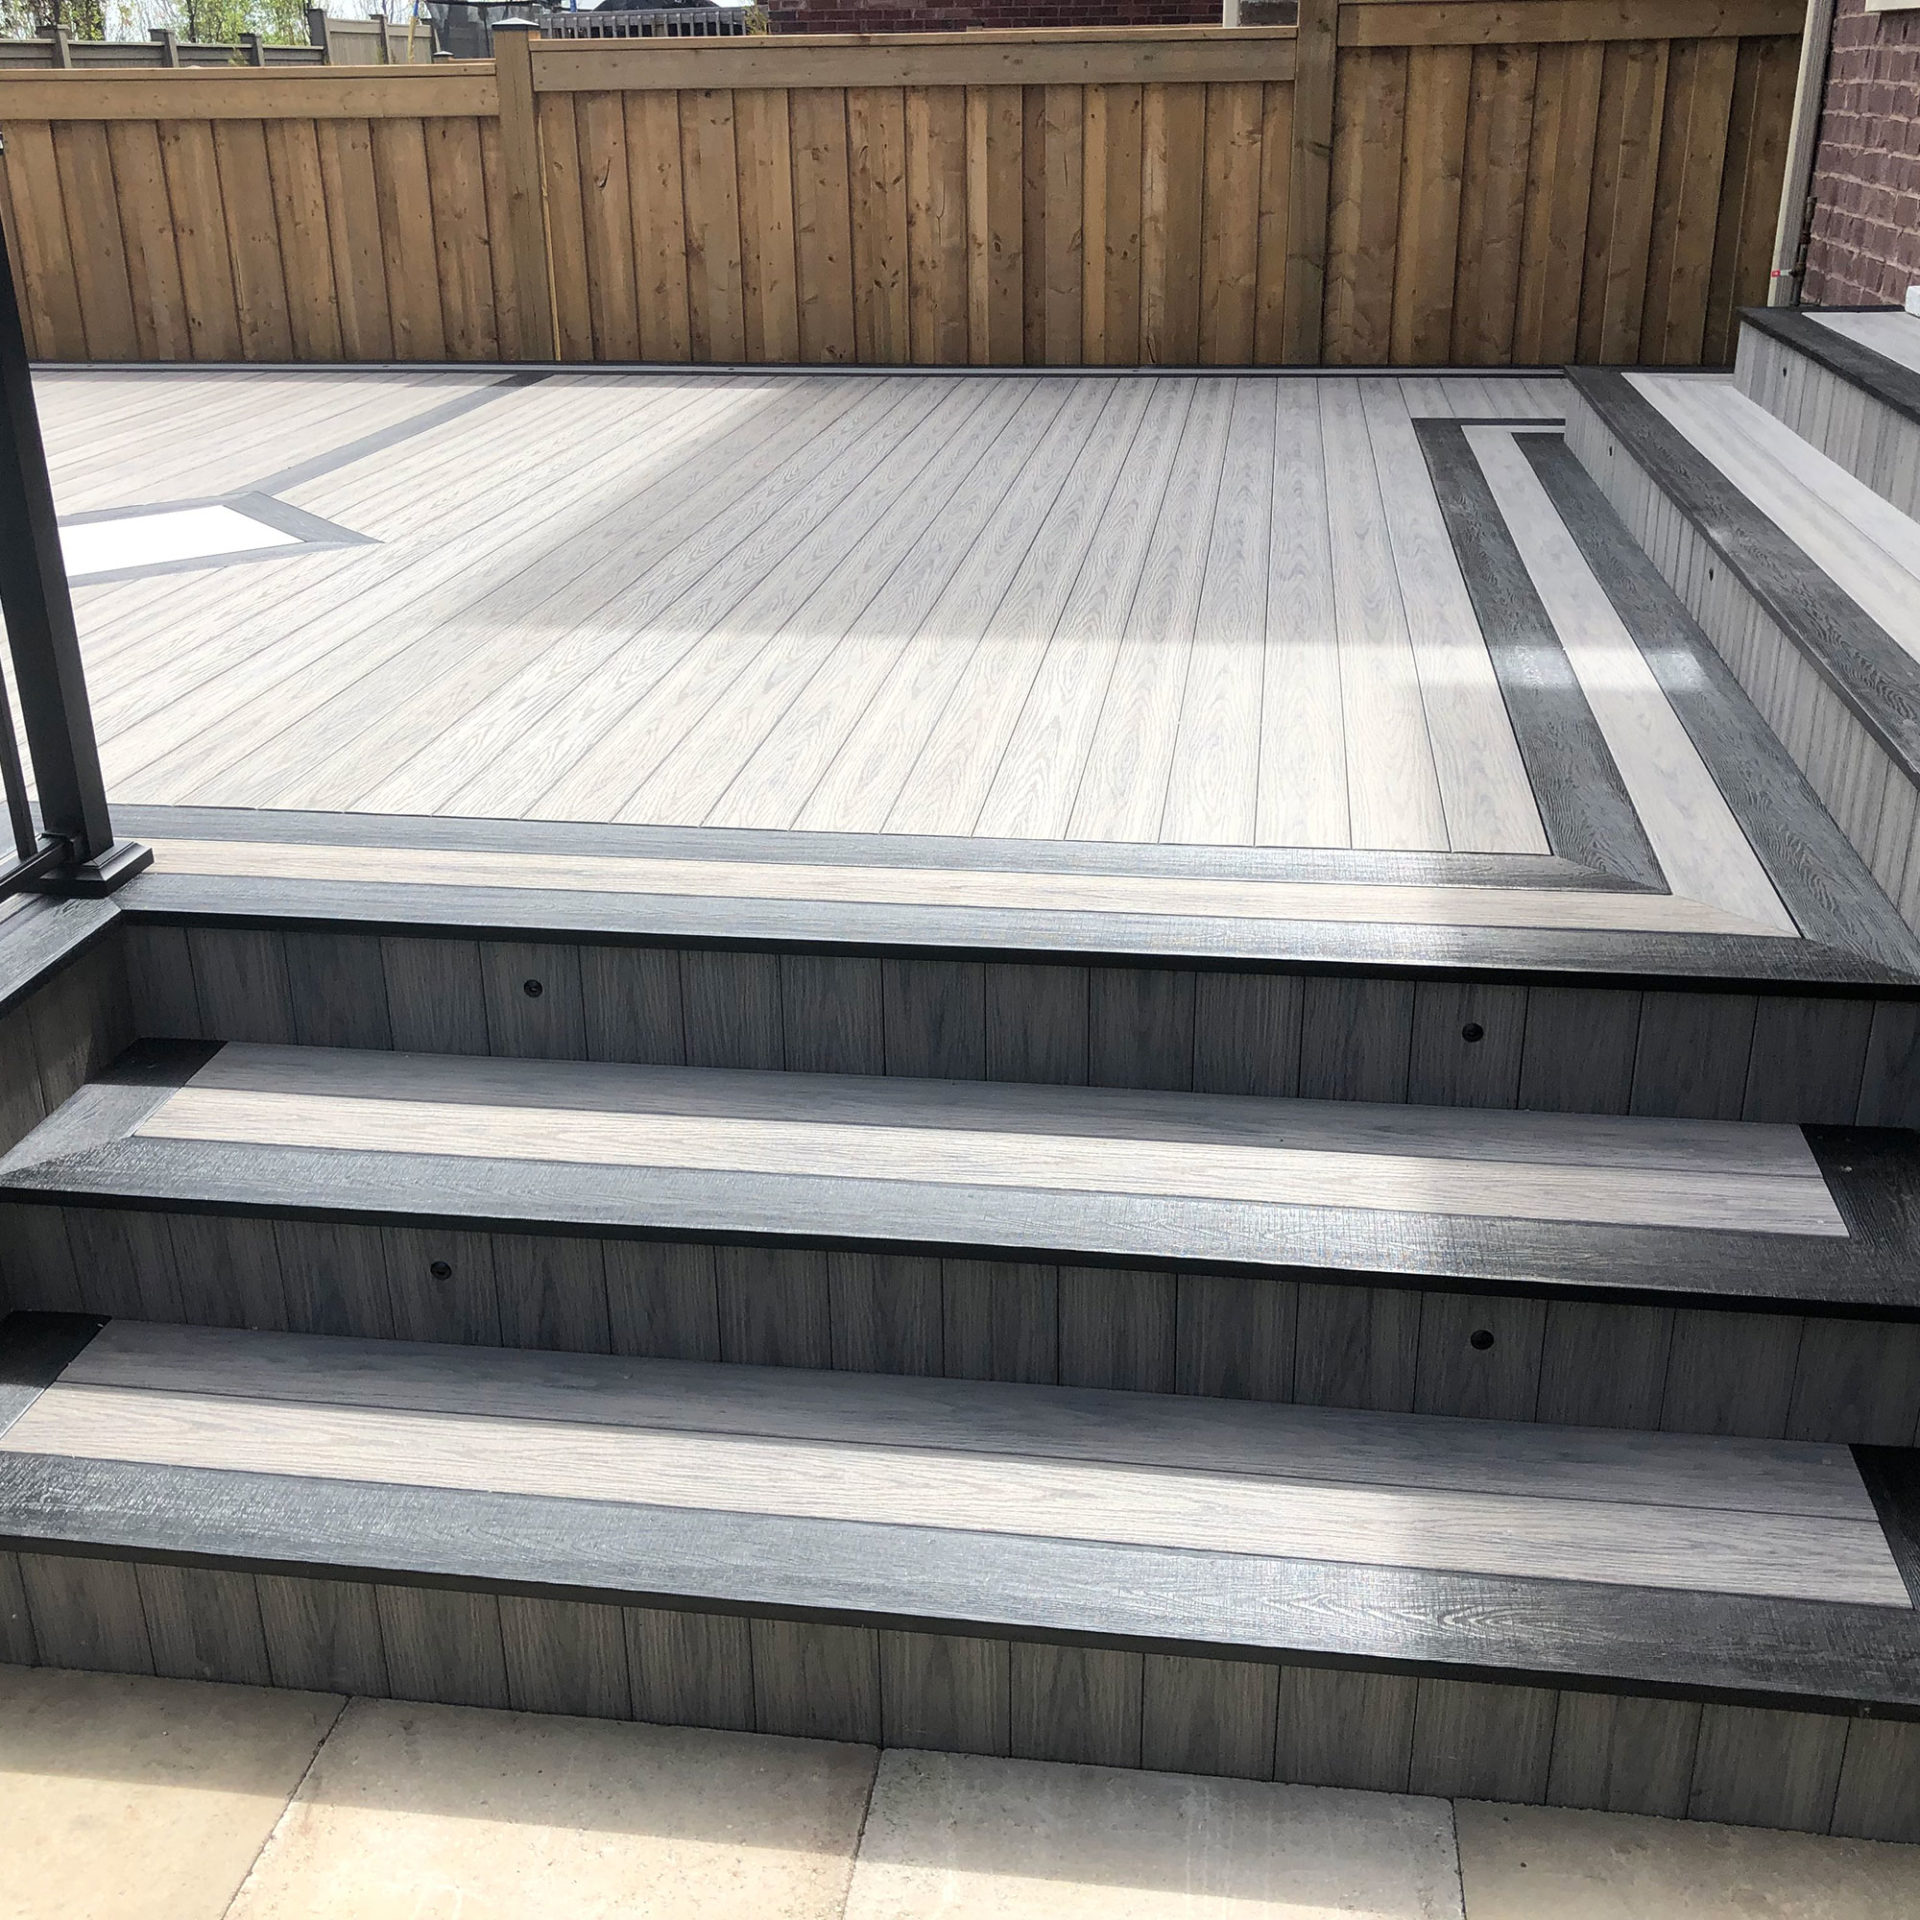 Tivadeck-Oakville-Deck-Black-and-Grey-Deck-Stairs-Fascia-Riser